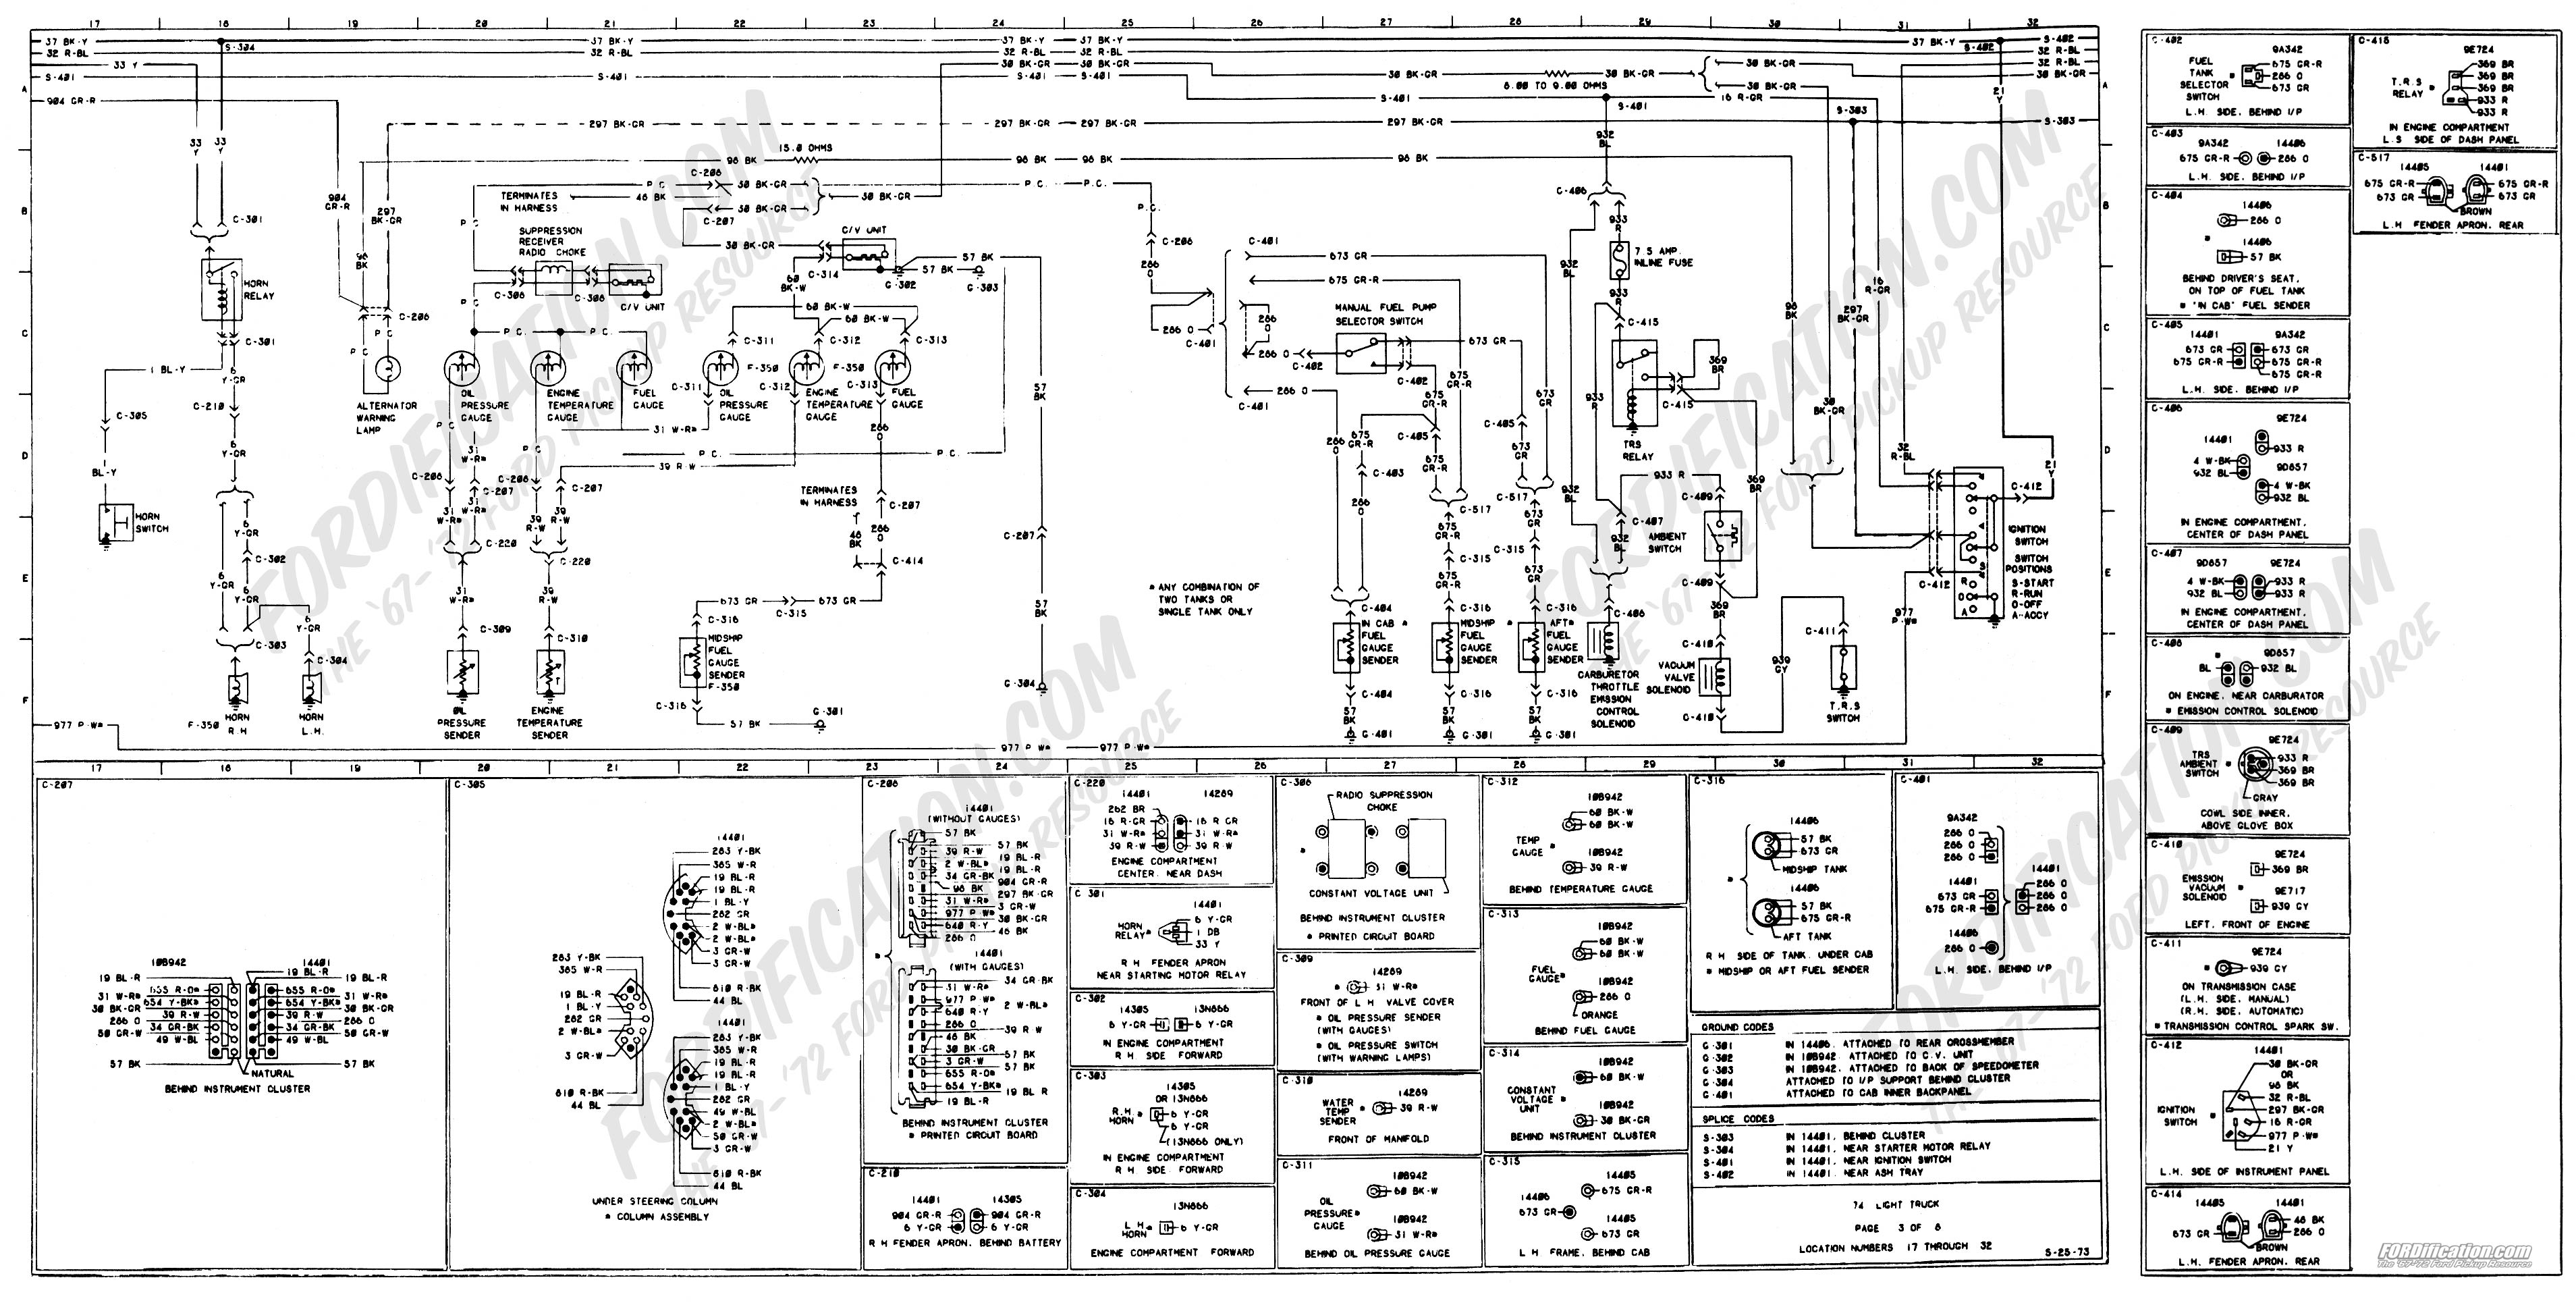 Alternator In 99 F150 Fuse Box Wiring Library 2006 F250 Diagram Ford Truck Block And Schematic Diagrams U2022 Rh Lazysupply Co Find 2004